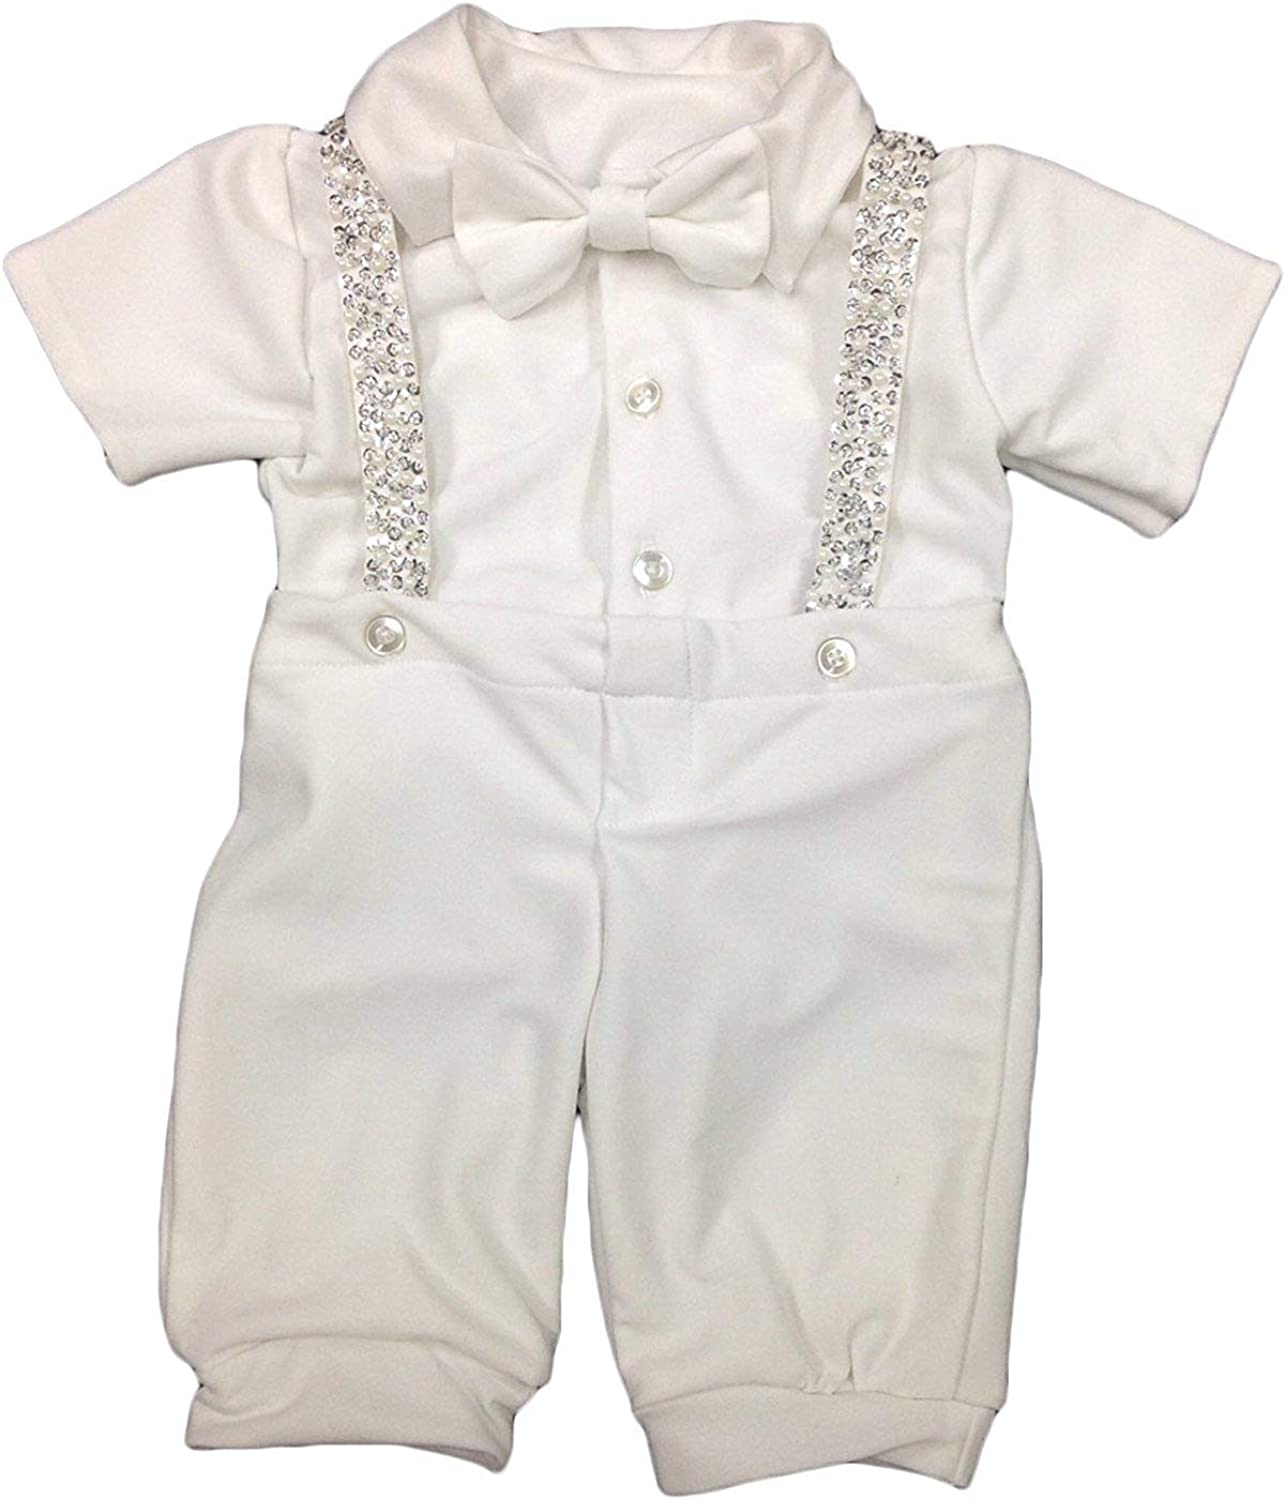 Faithclover Christening Outfit for Baby Boy Long Pants Set with Bonnet